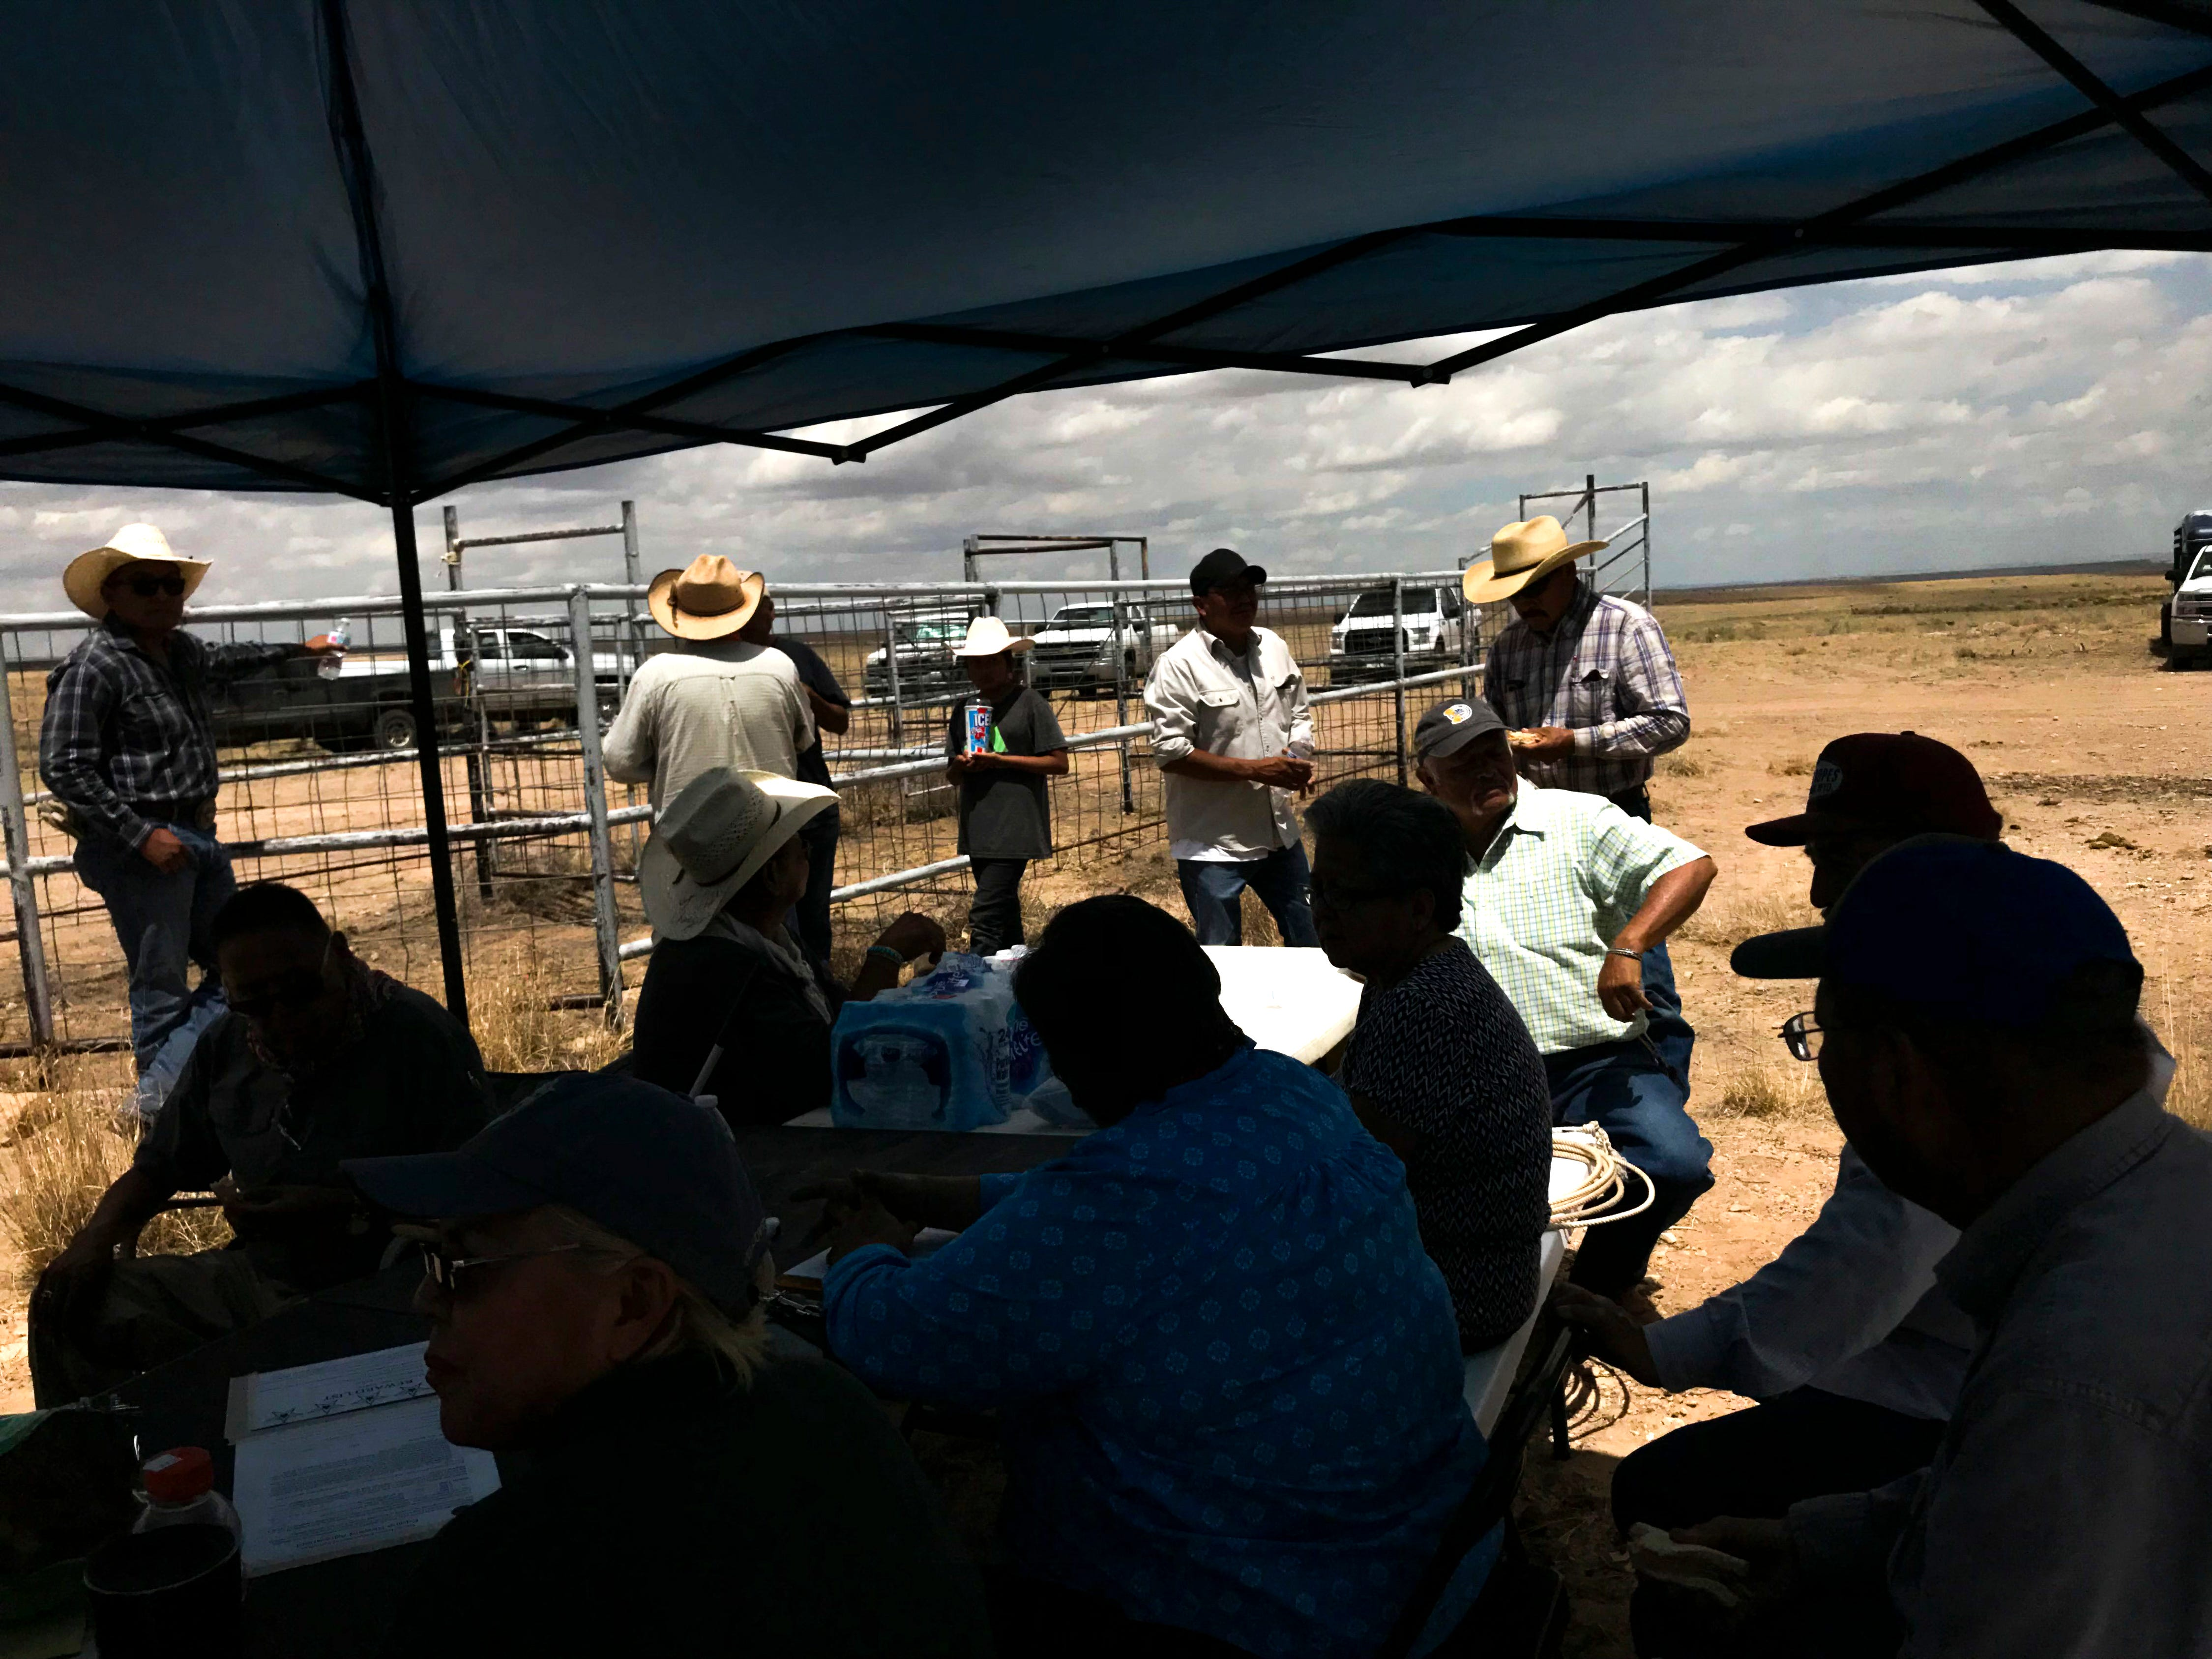 Members from the Navajo Nation Department of Agriculture, Bureau of Indian Affairs and community members wait for horses to arrive, Friday, August 3, 2018 at the auction yard in Naschitti.